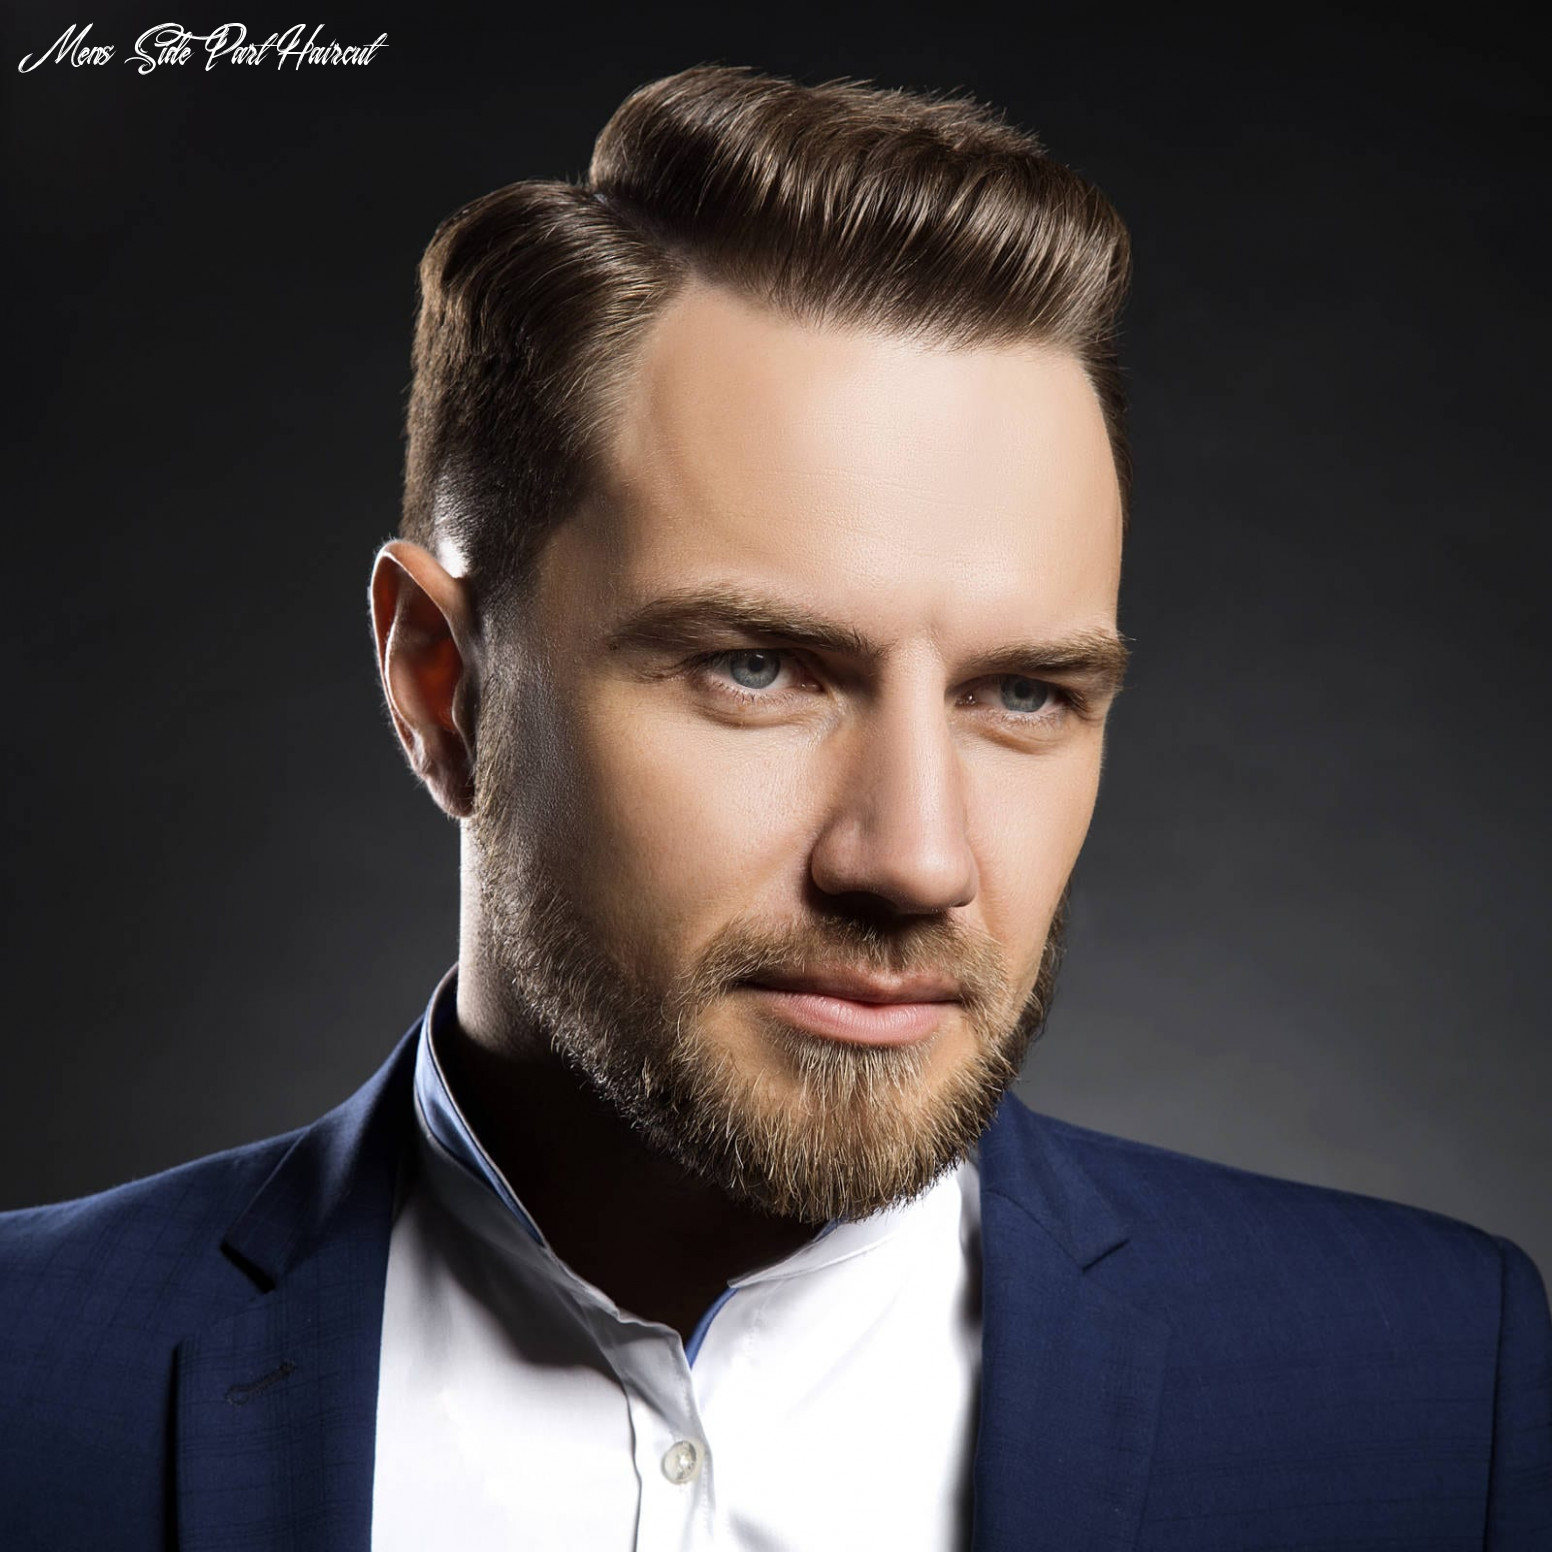 10 side part haircuts: a classic style for gentlemen mens side part haircut